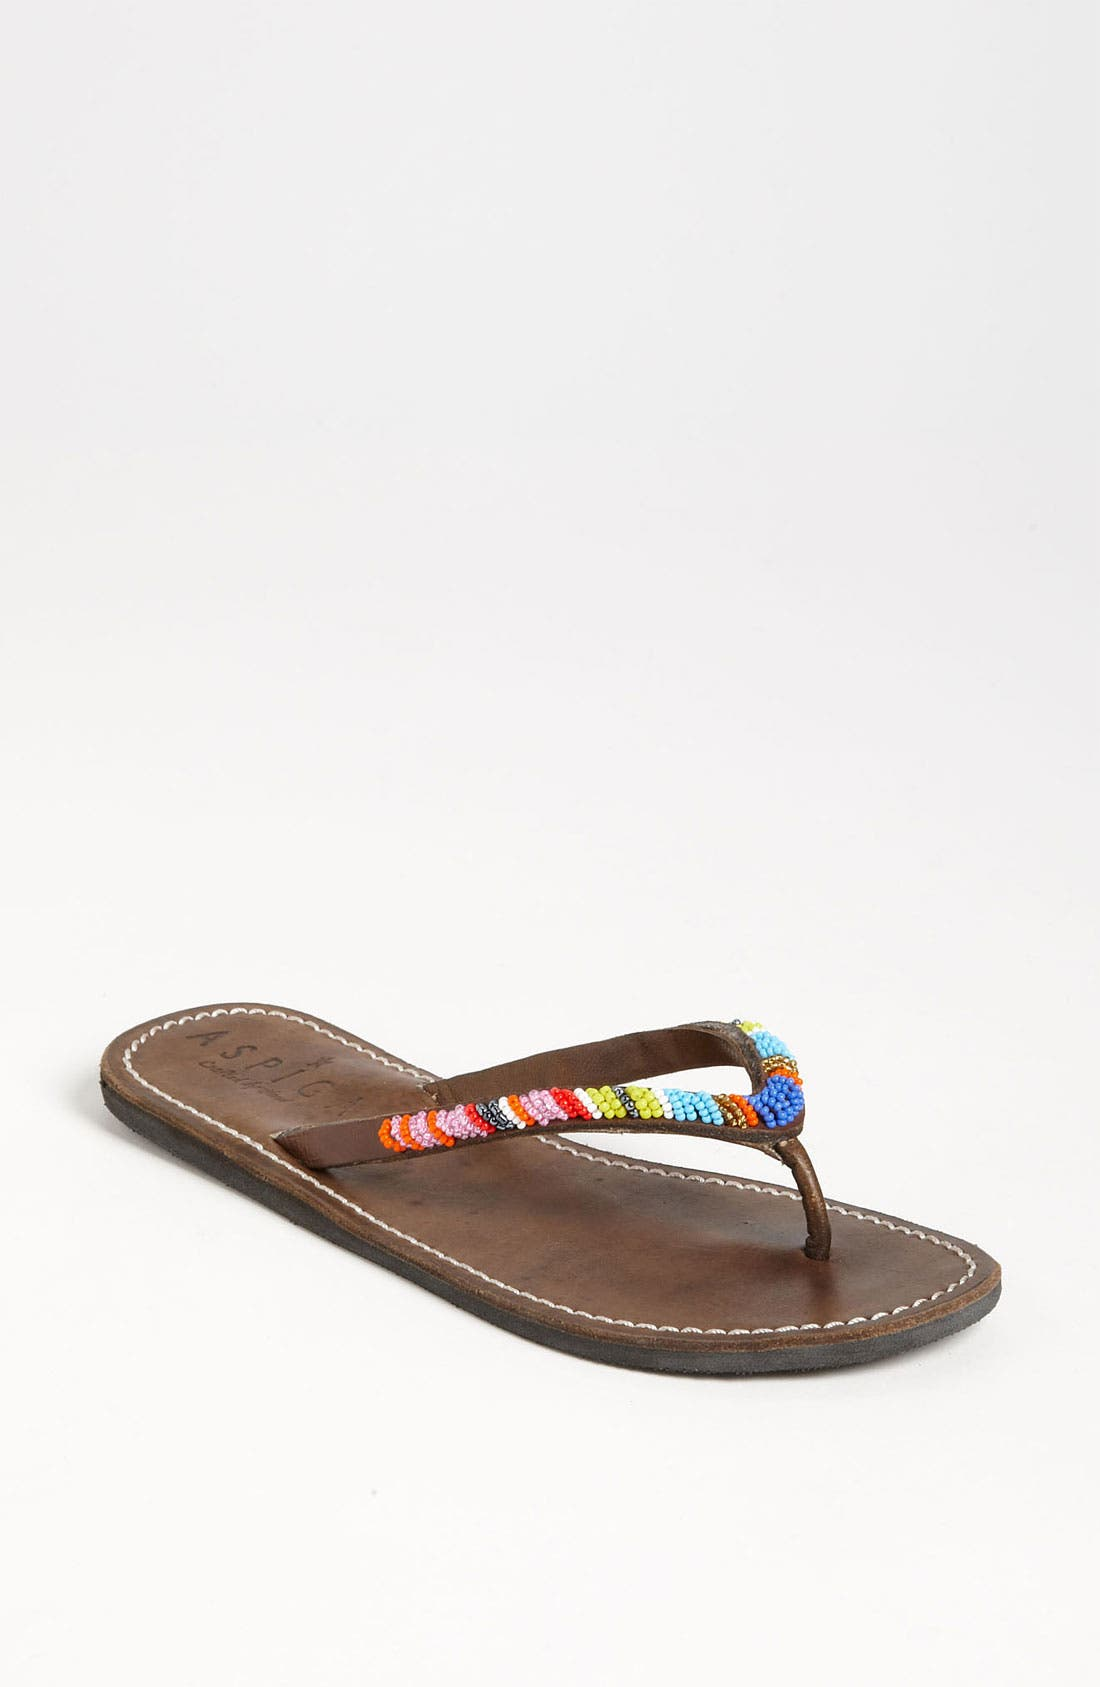 Alternate Image 1 Selected - Aspiga 'Classic' Sandal